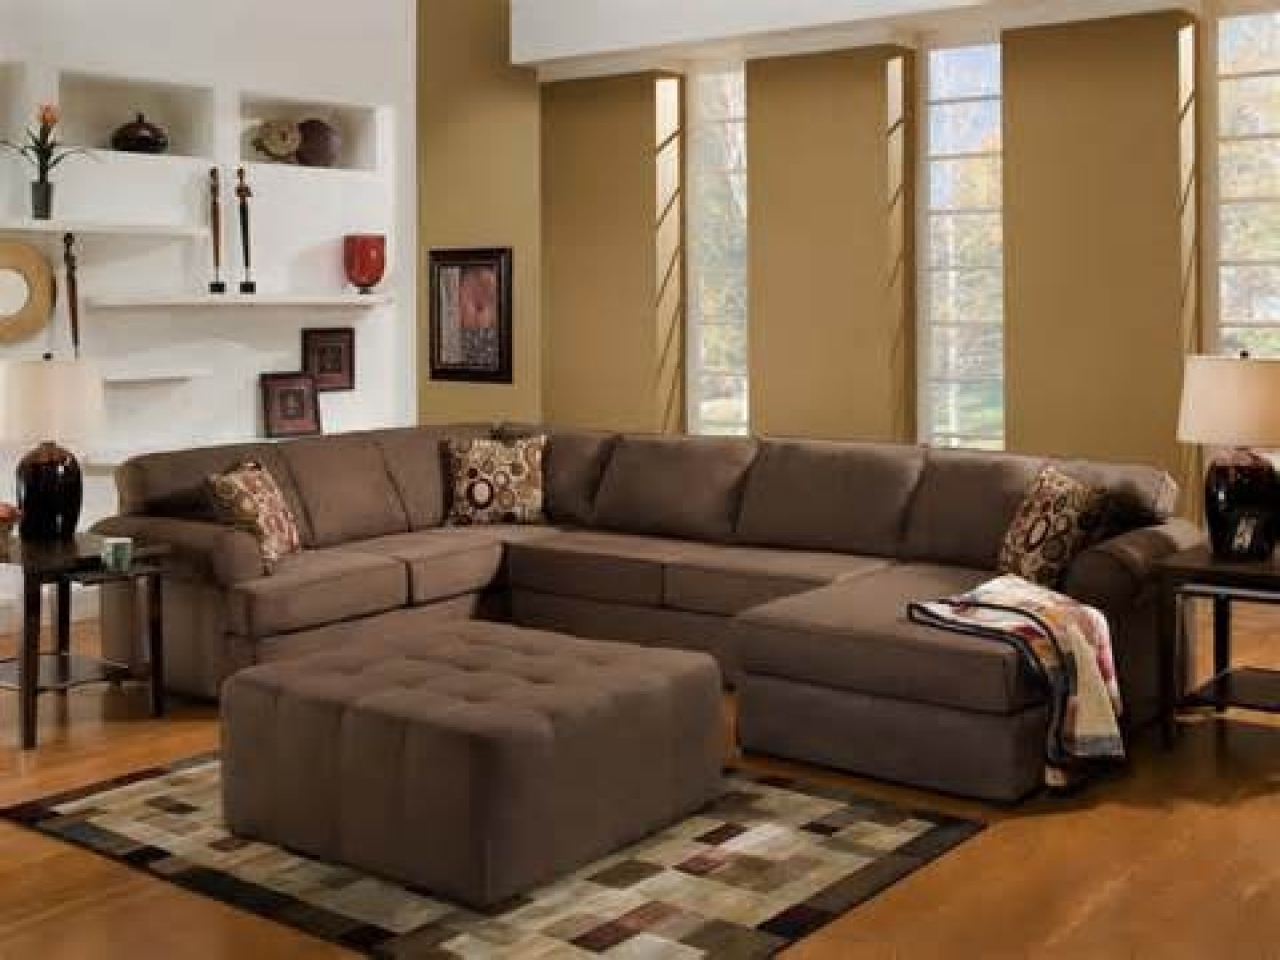 2019 Sectional Sofas At Big Lots Pertaining To Costco Furniture Sectional, Big Lots Furniture Sofa Big Lots (View 18 of 20)